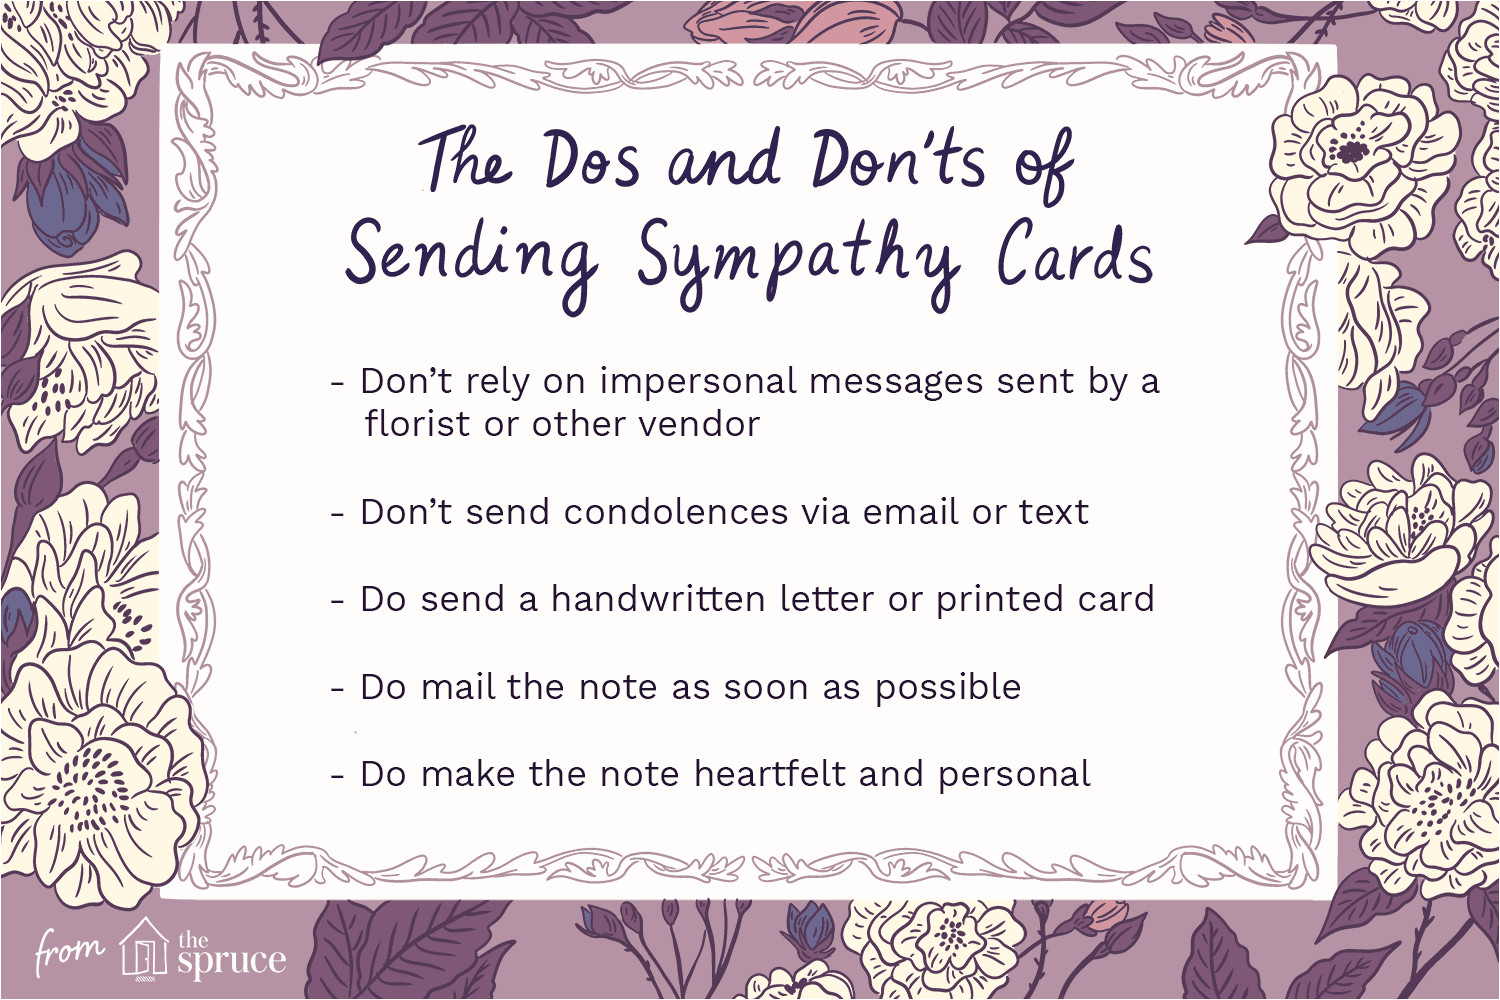 what to write in a sympathy card 1216773 final bab825675bd7414aadd53f02e711cb6e png